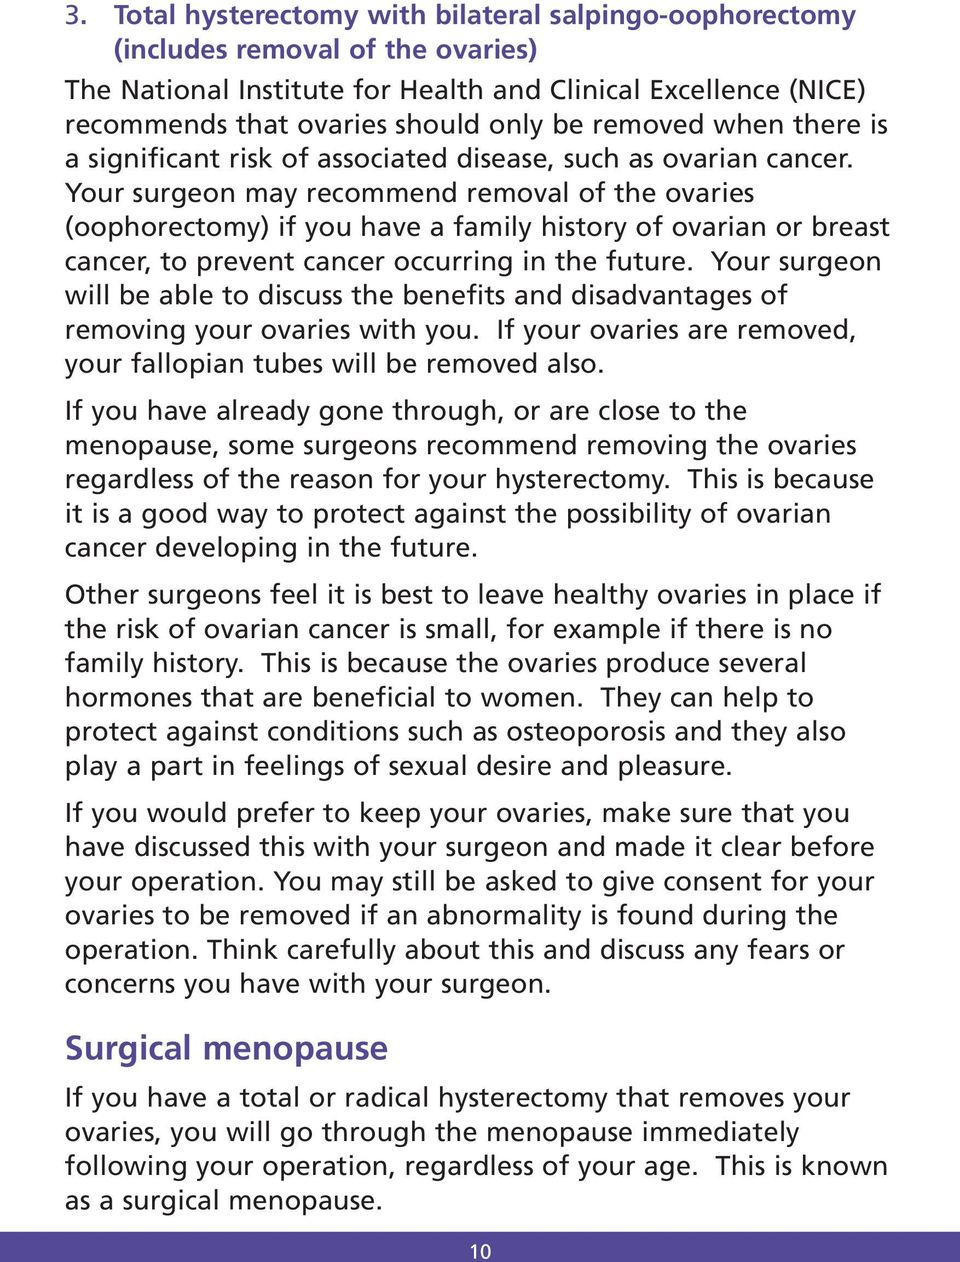 Your surgeon may recommend removal of the ovaries (oophorectomy) if you have a family history of ovarian or breast cancer, to prevent cancer occurring in the future.